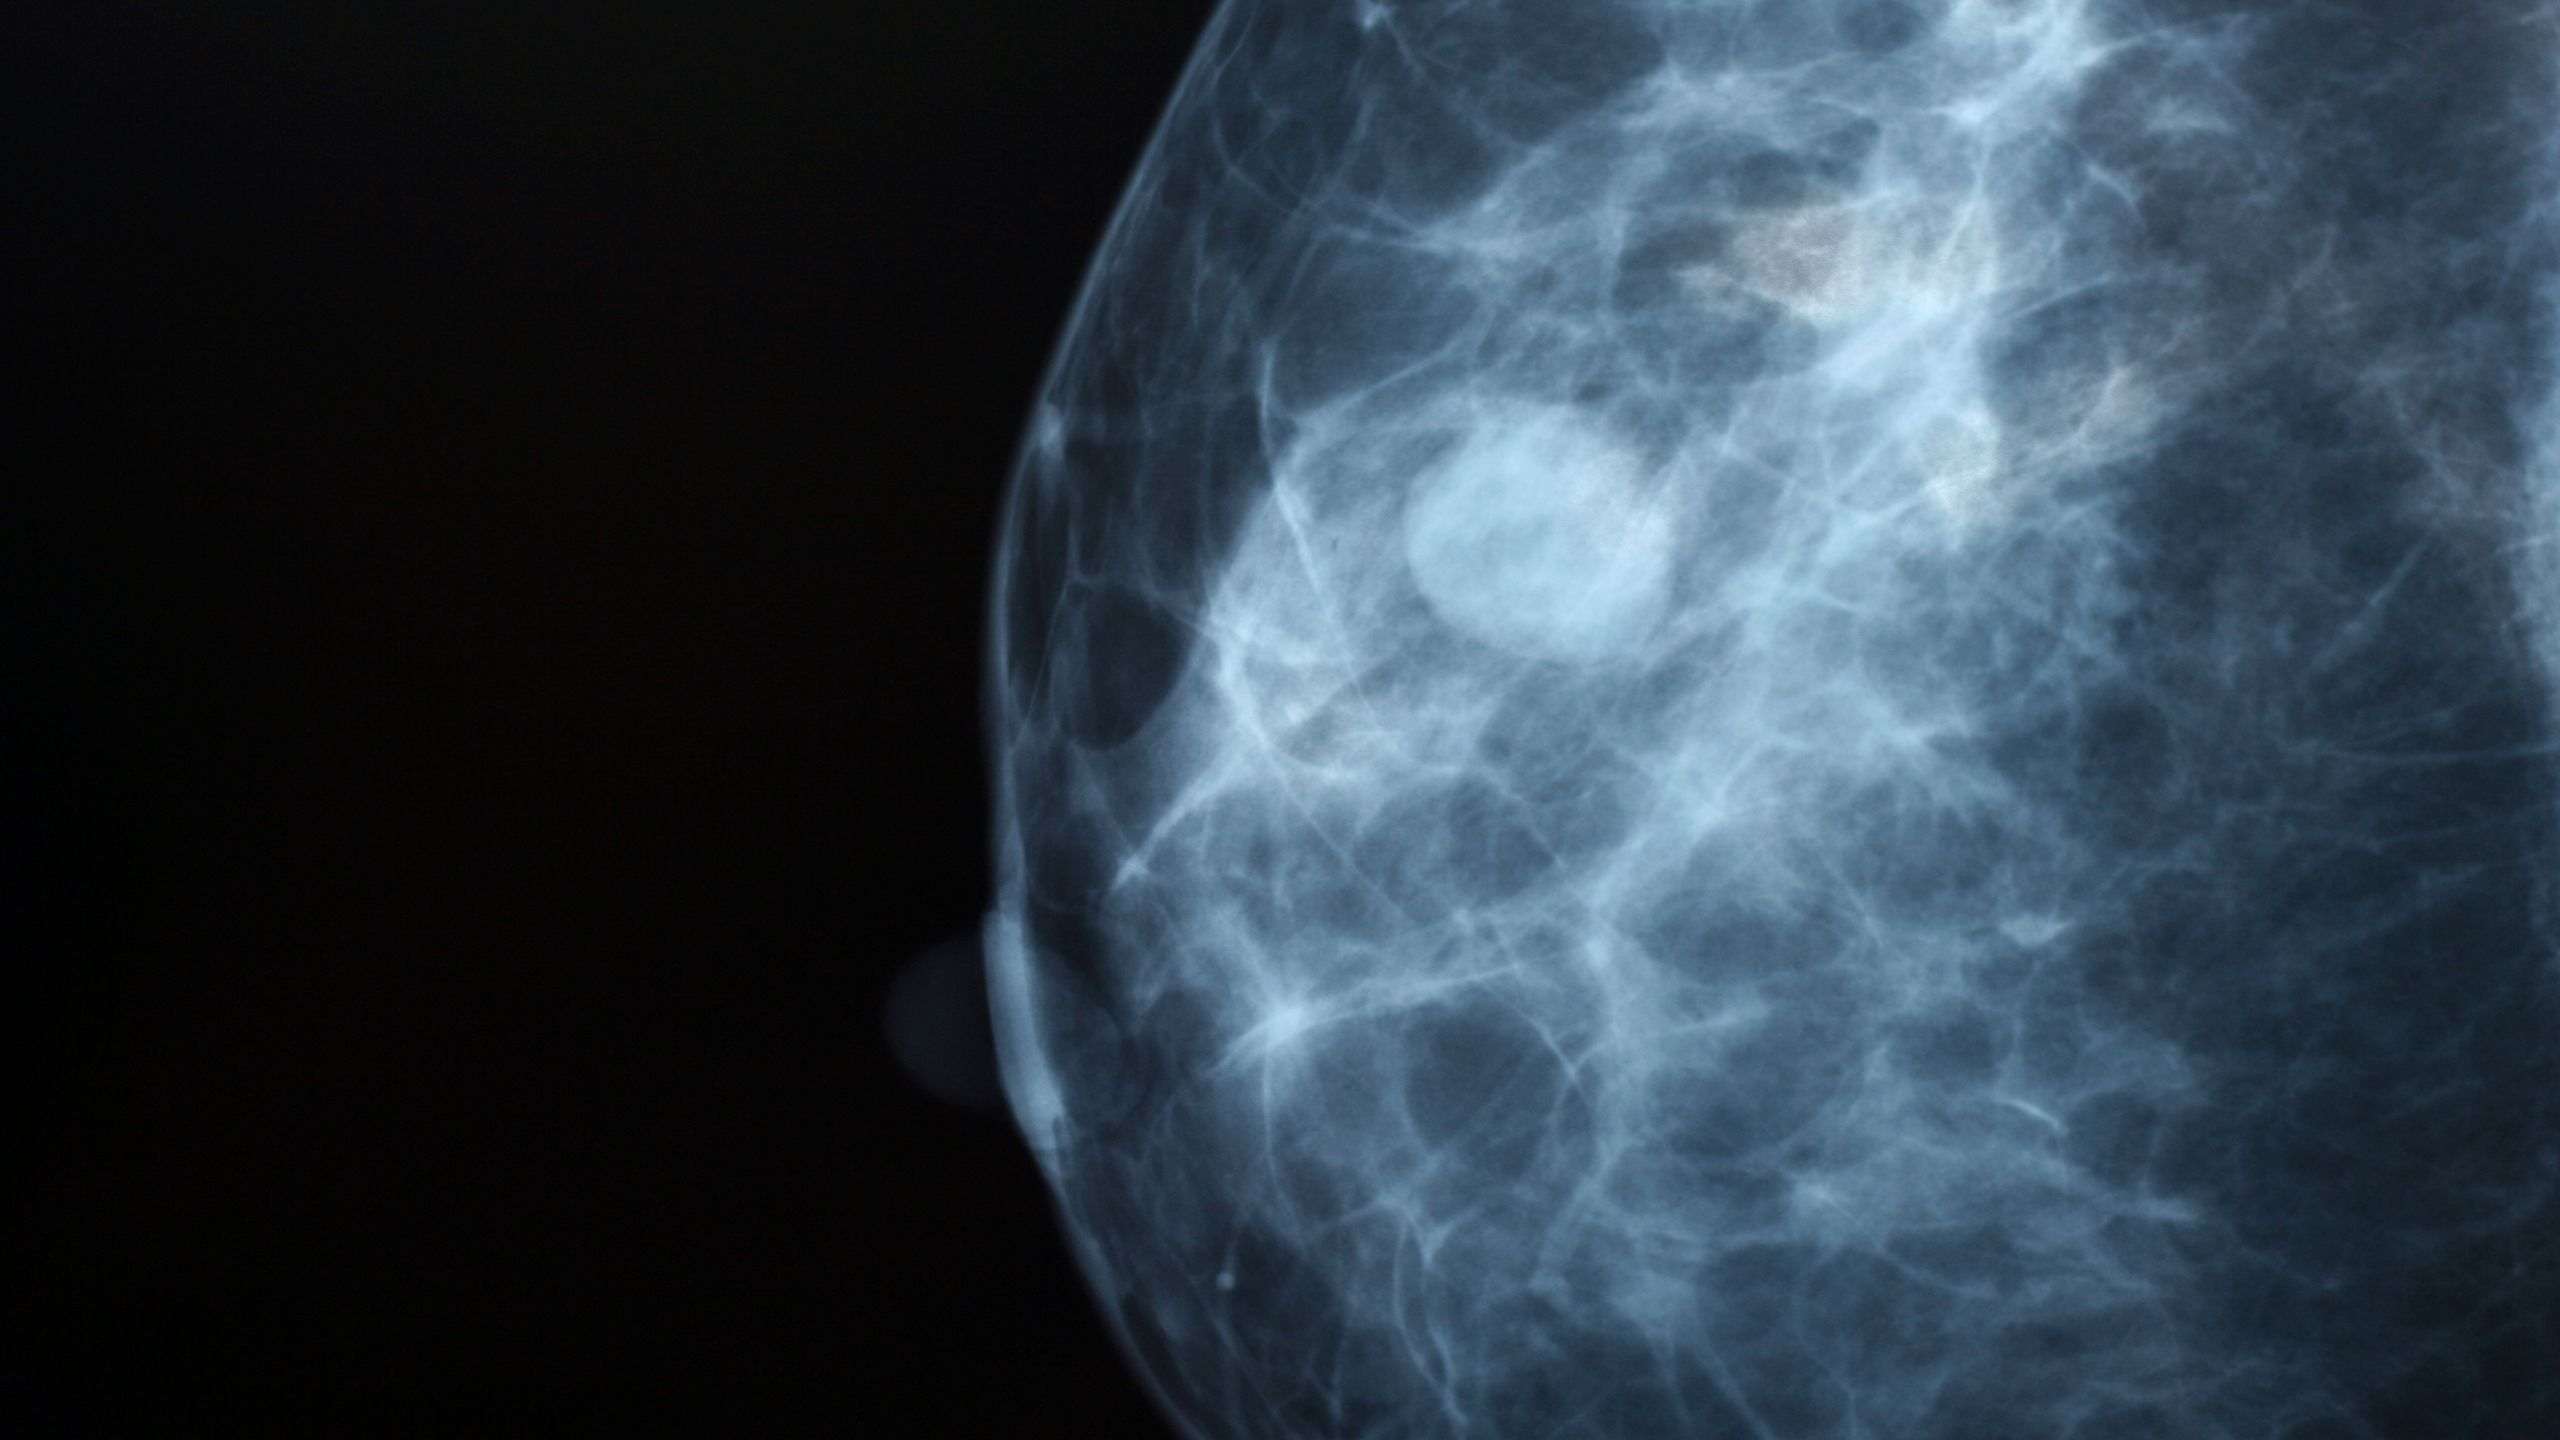 I Had a Mammogram Come Back Positive... Should I Be Worried?